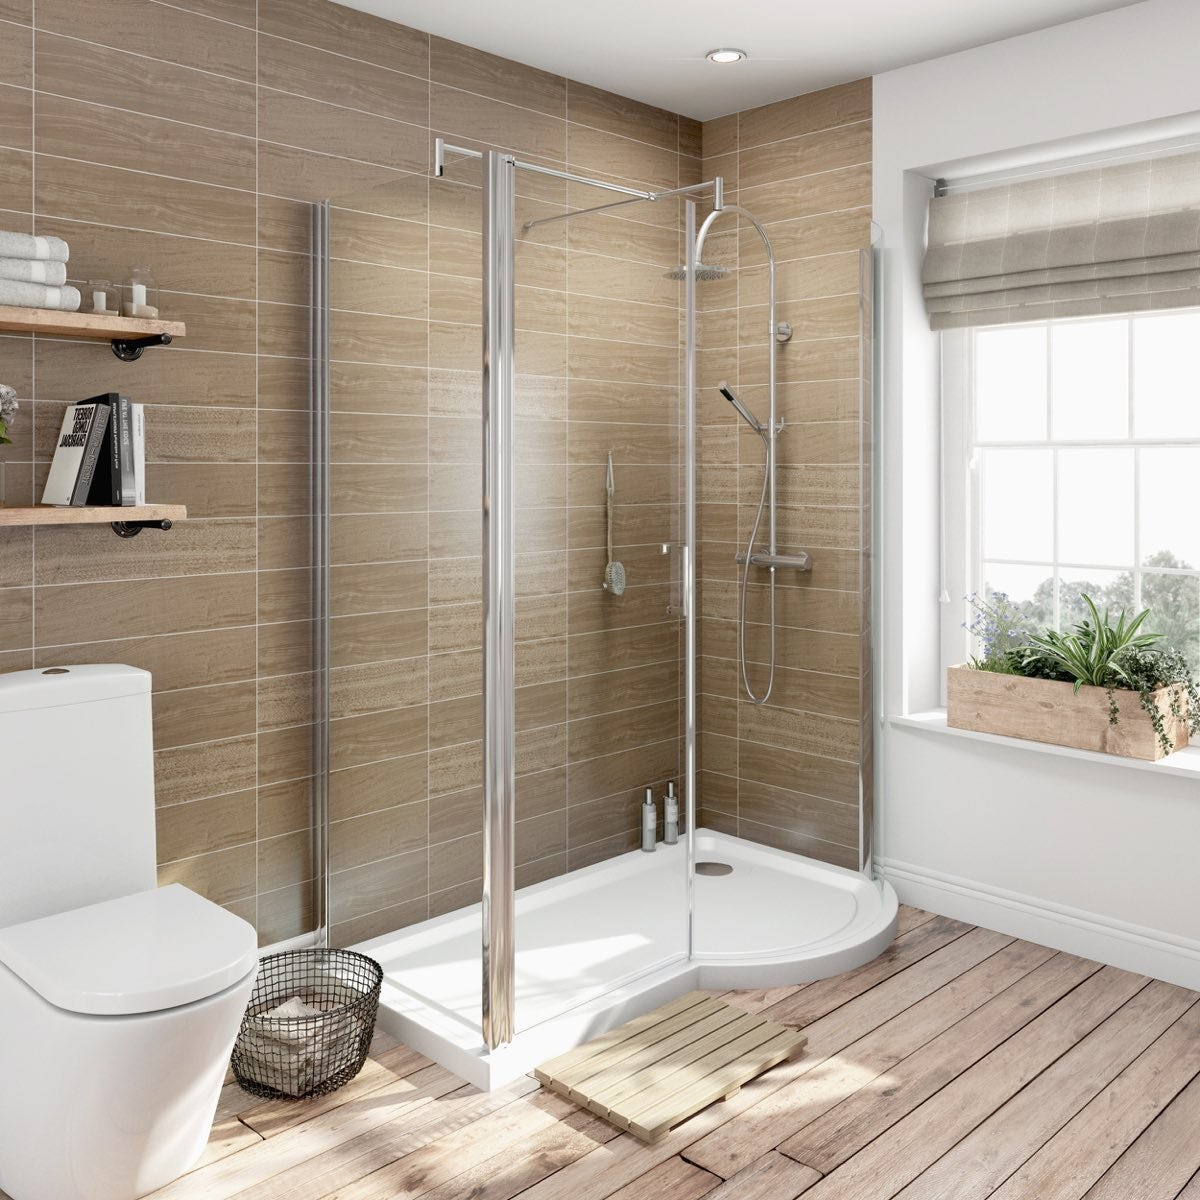 6mm right handed P shaped shower enclosure 1500 x 900